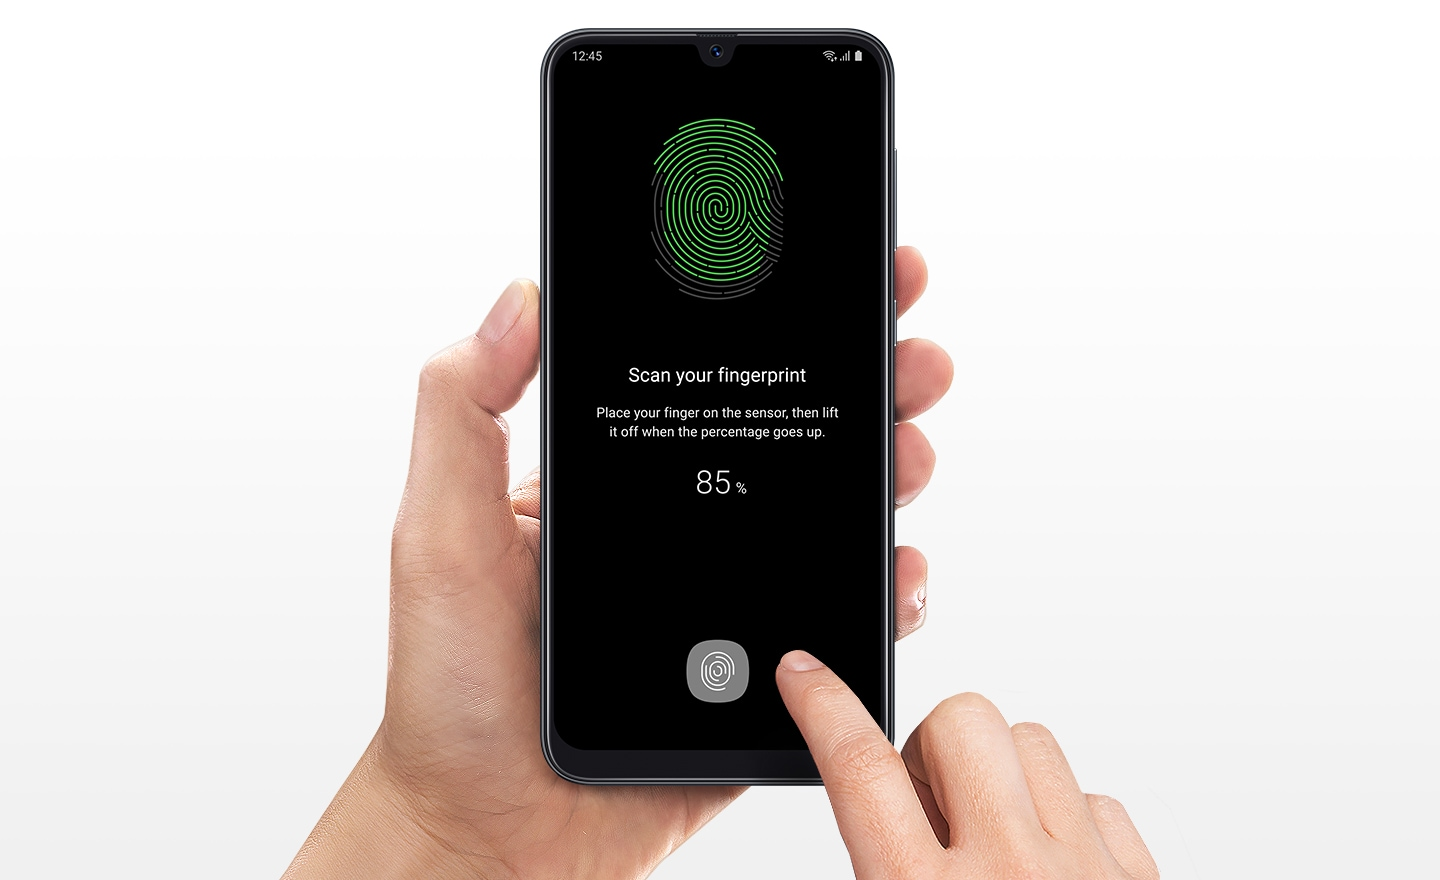 vn-feature-your-fingerprint-is-the-key-152411572.jpg